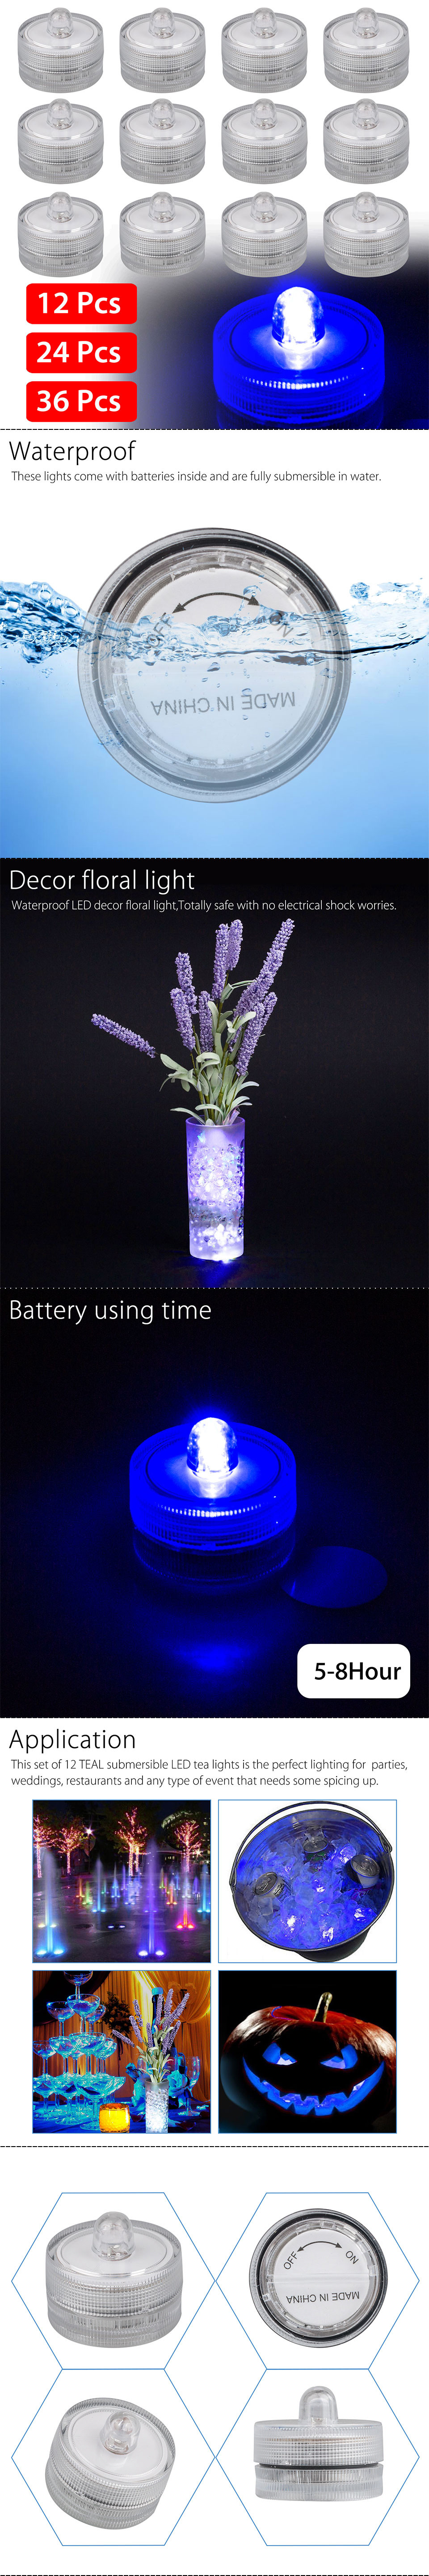 led vase lights wholesale of 12 24 36 x submersible waterproof underwater vase wedding battery within this set of 12 teal submersible led tea lights is the perfect lighting for parties weddings restaurants and any type of event that needs some spicing up